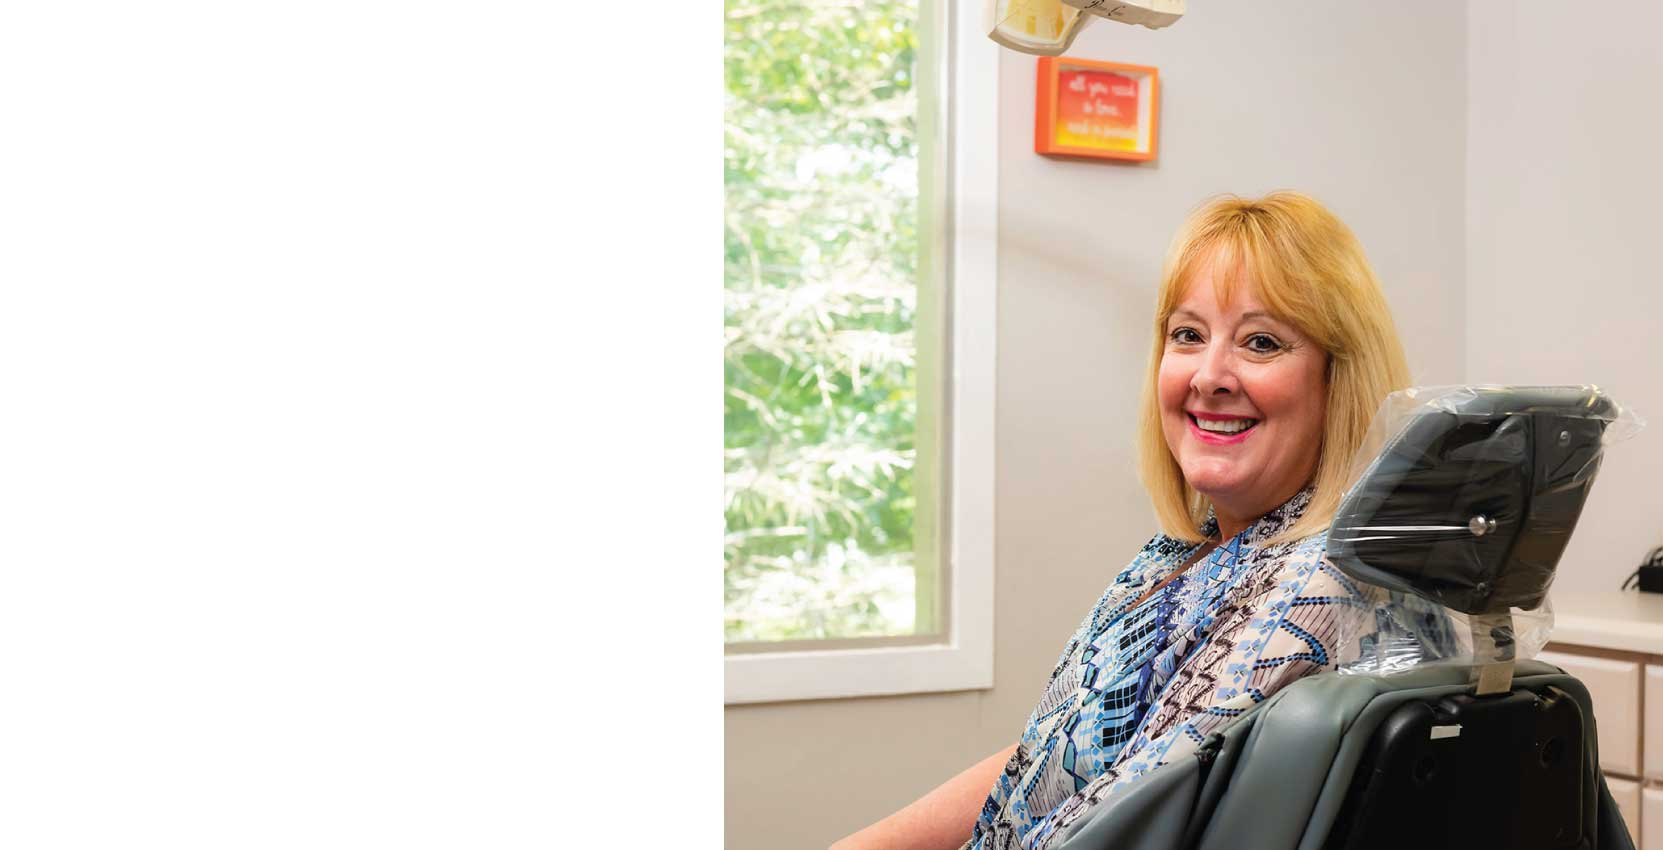 canton-heights-dental-woman-in-dentist-chair-image